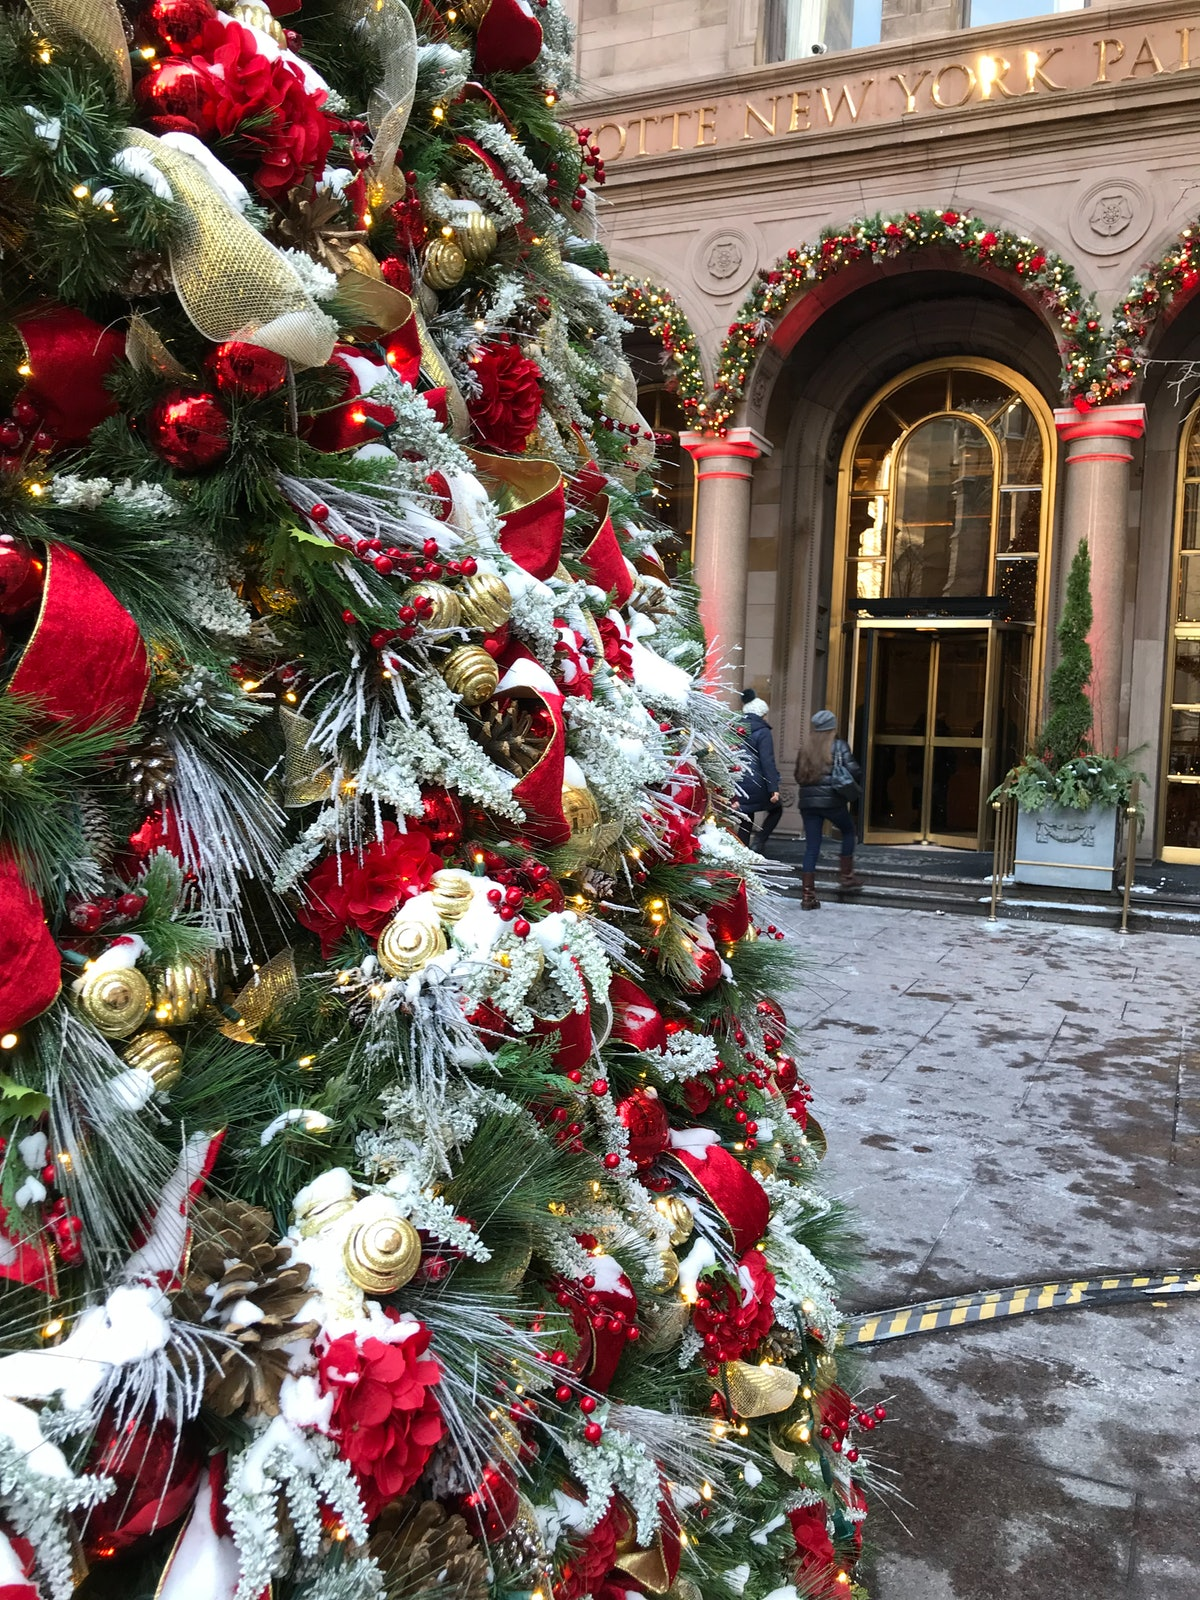 A beautifully-decorated Christmas tree with pinecones, gold accents, string lights, and red flowers is in front of Lotte New York Palace in New York City.